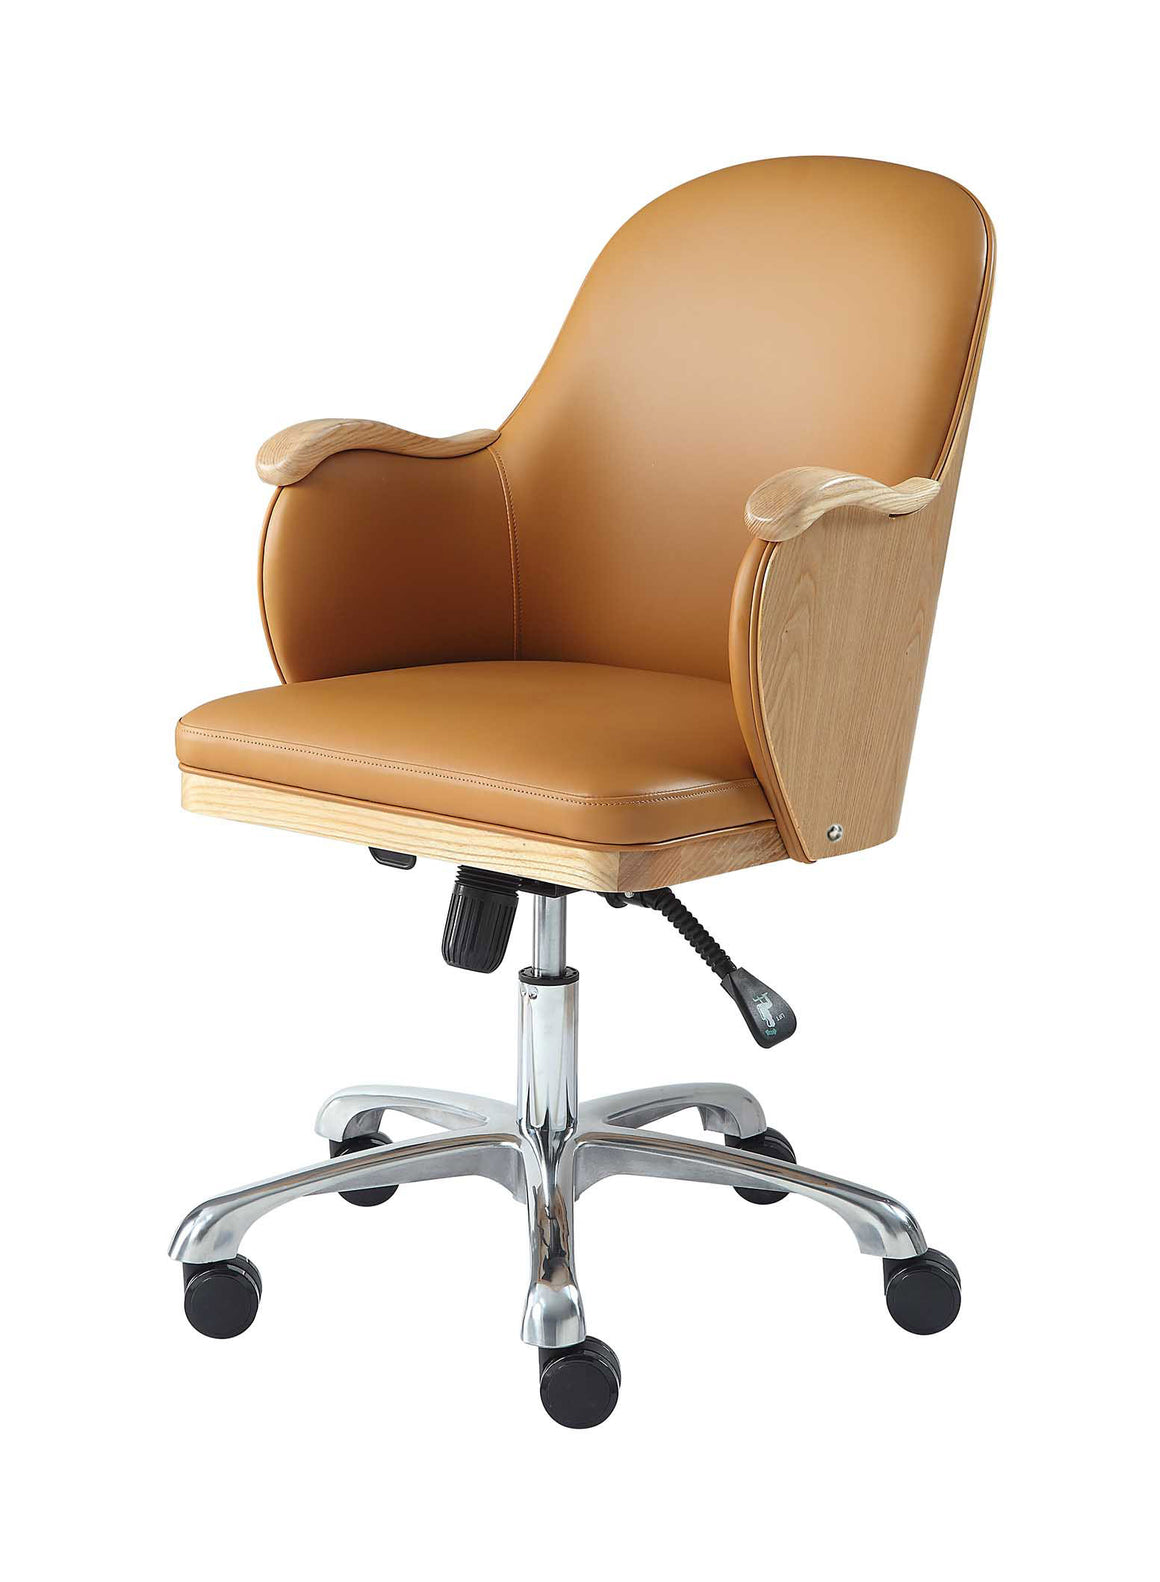 PC712 - San Francisco Executive Office Chair Oak - PRE ORDER FOR DELIVERY W/C 17/08/20